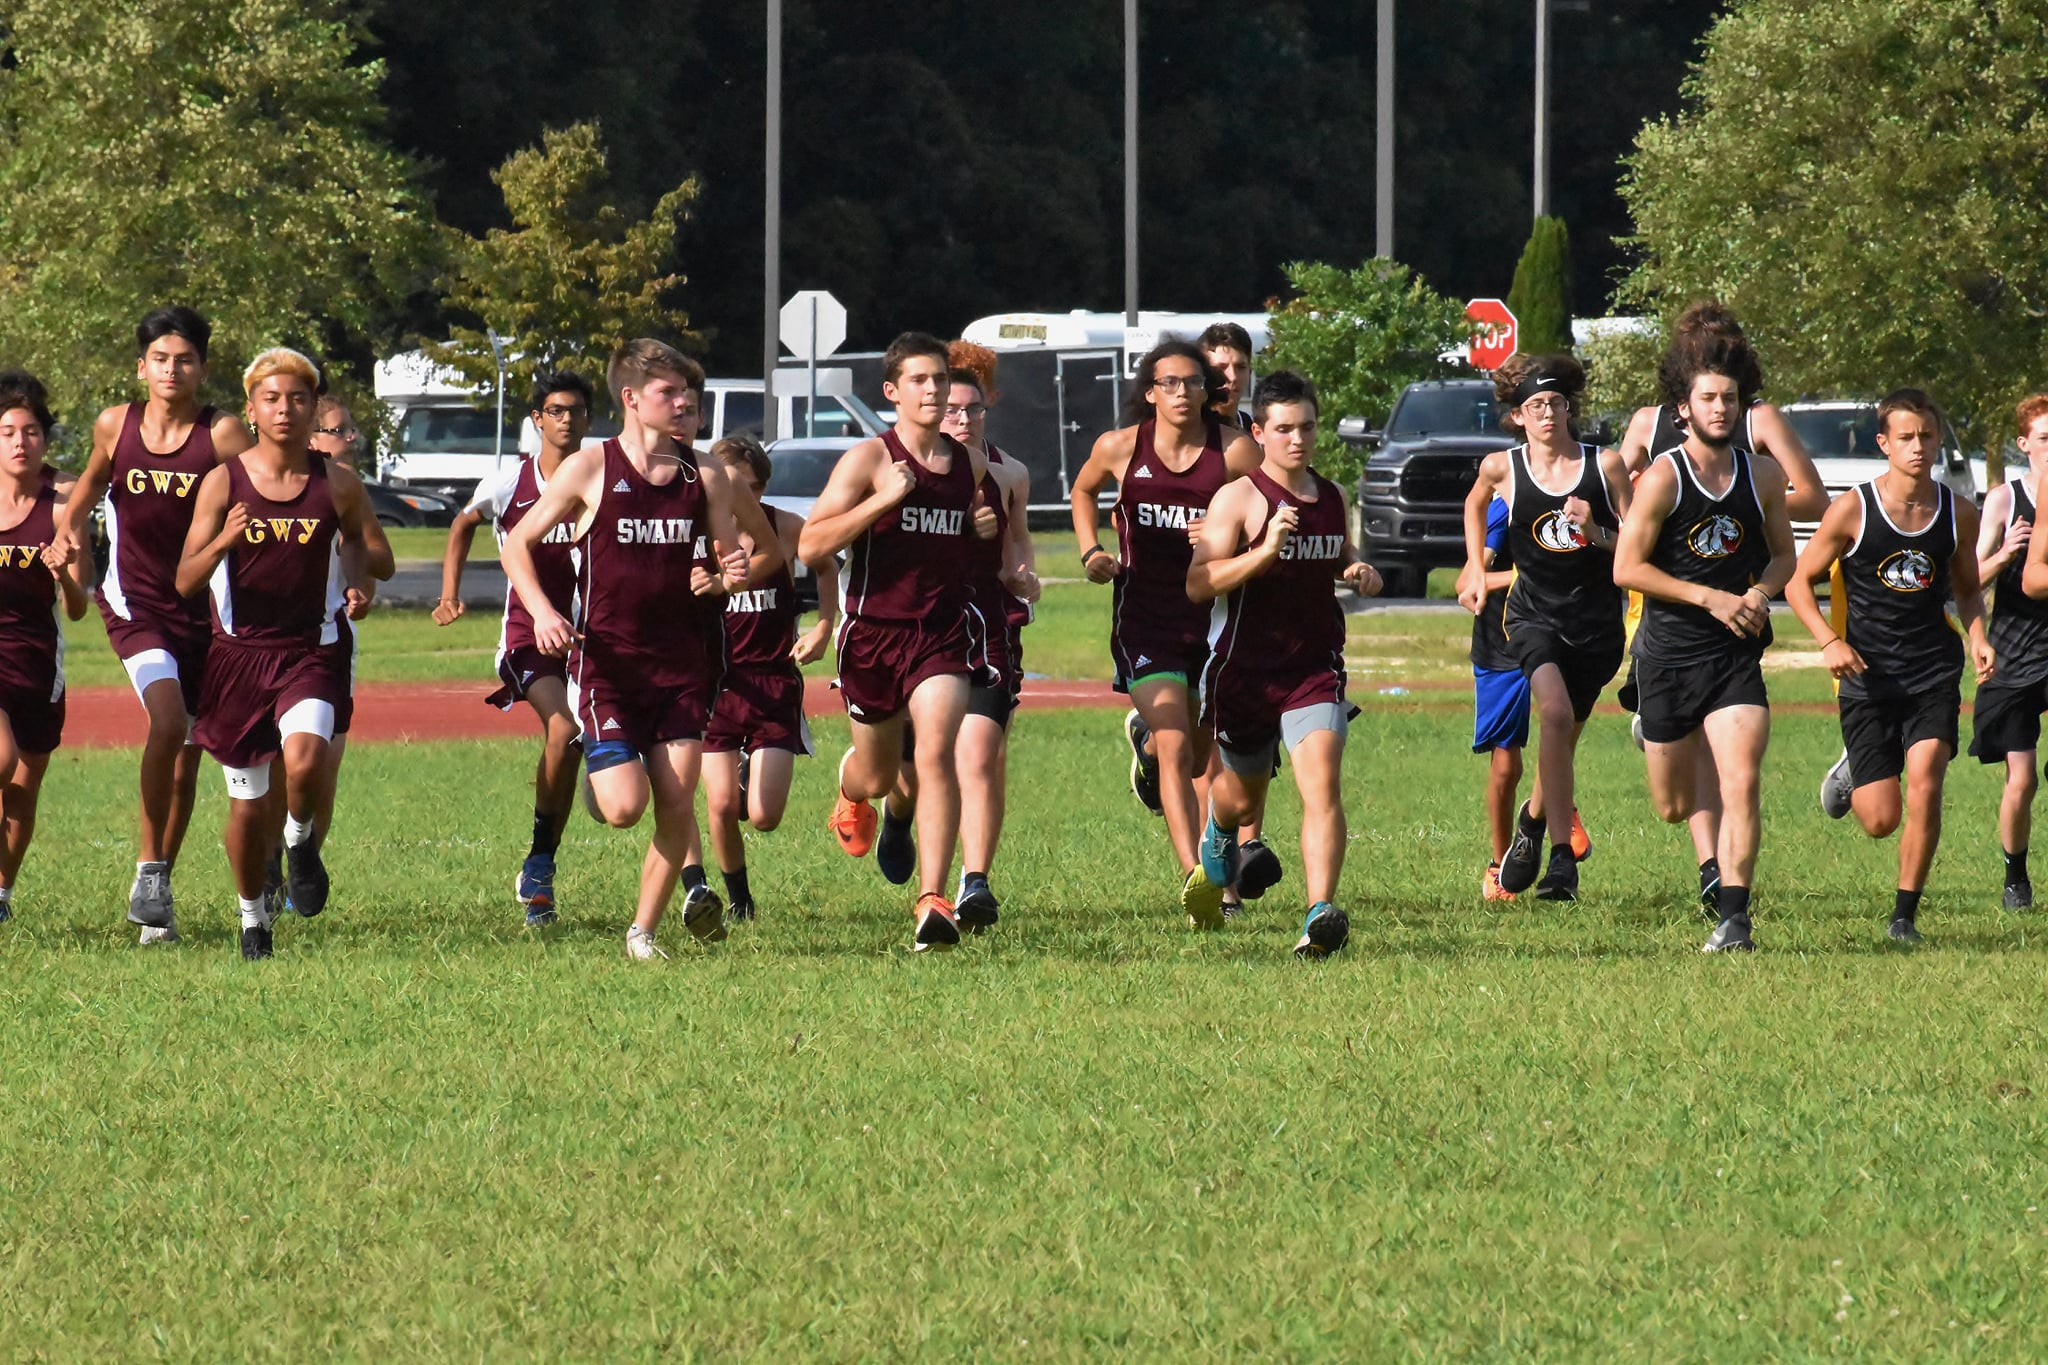 Swain Takes 1st in Close Meet